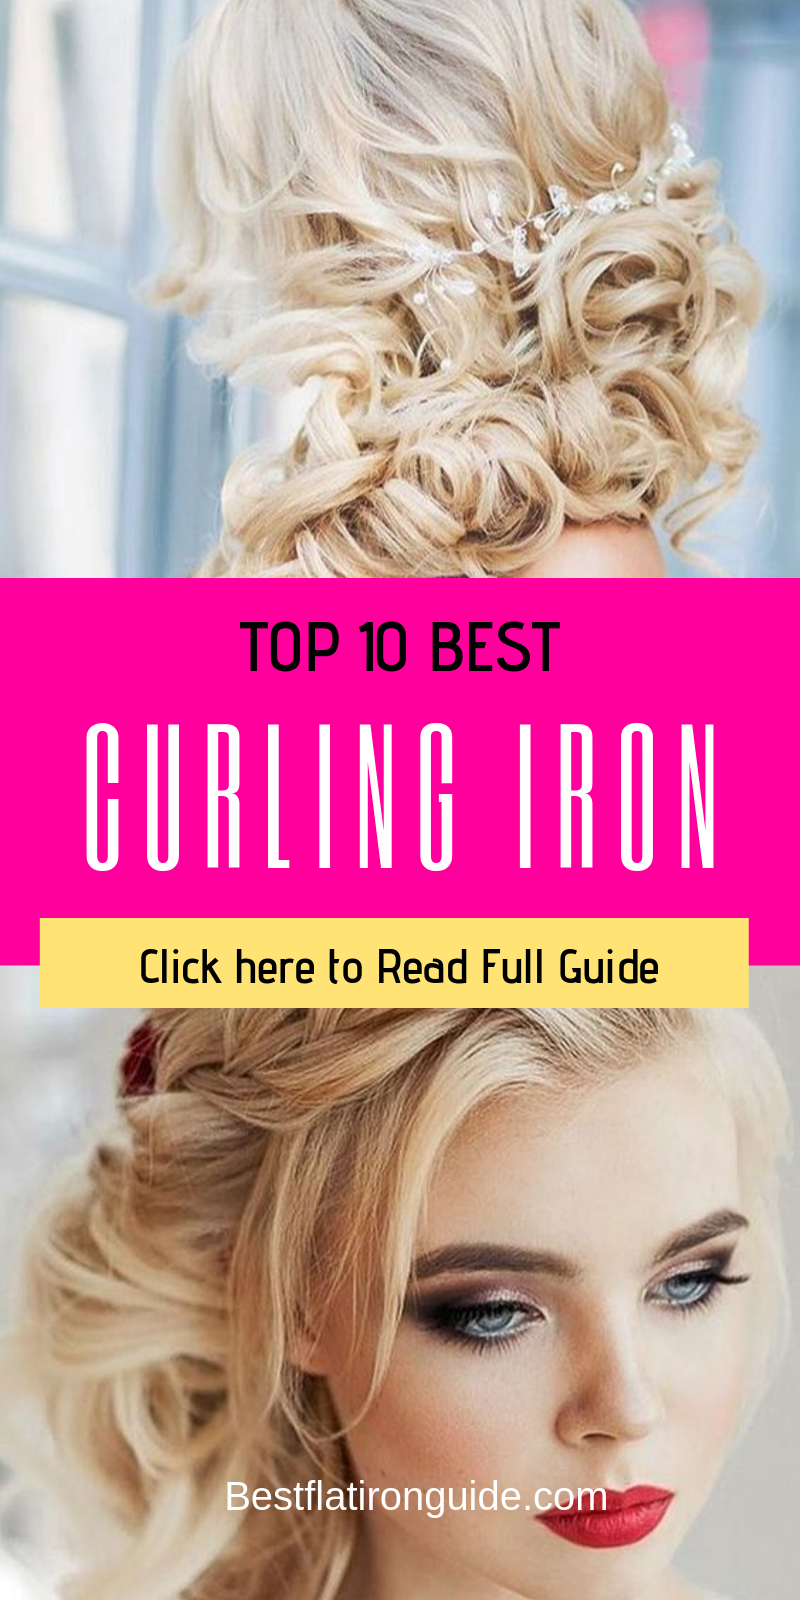 Best Curling Iron For Fine Hair Good Curling Irons Flat Iron Hair Styles Curling Iron Hairstyles